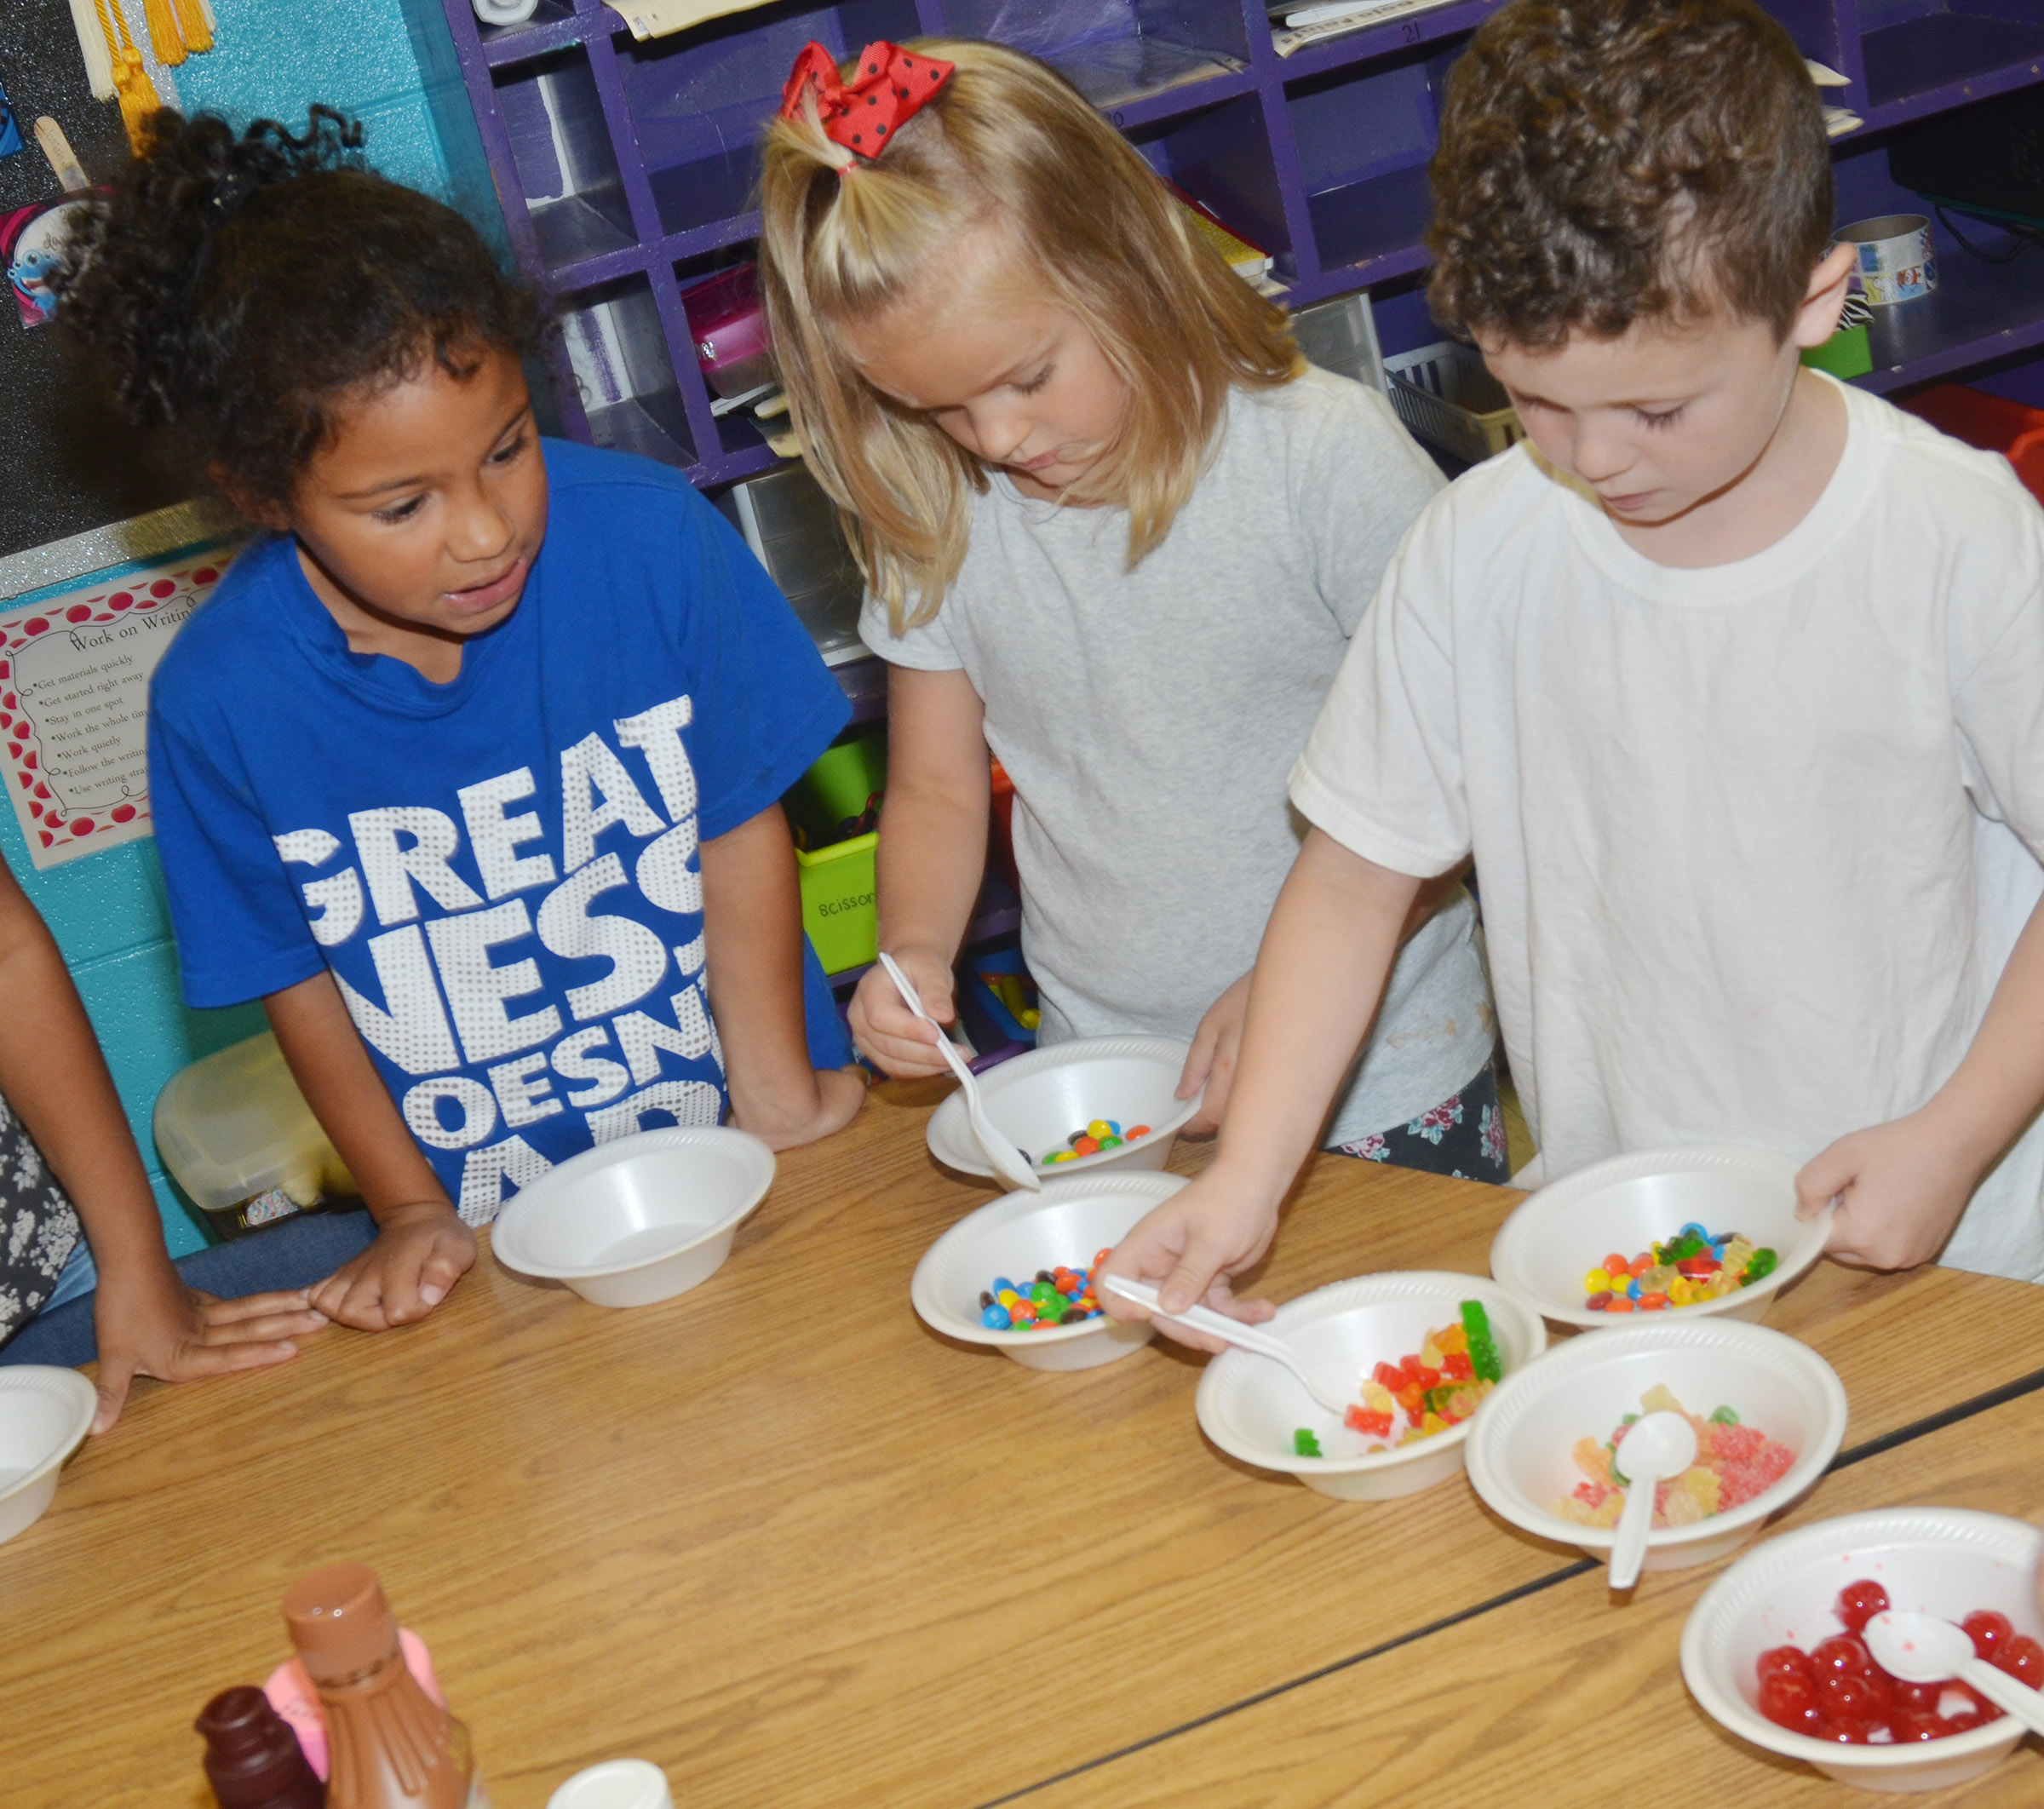 From left, CES first-graders Nevaeh Shofner, Miley Orberson and Braydan Dyer get toppings for their ice cream sundaes.